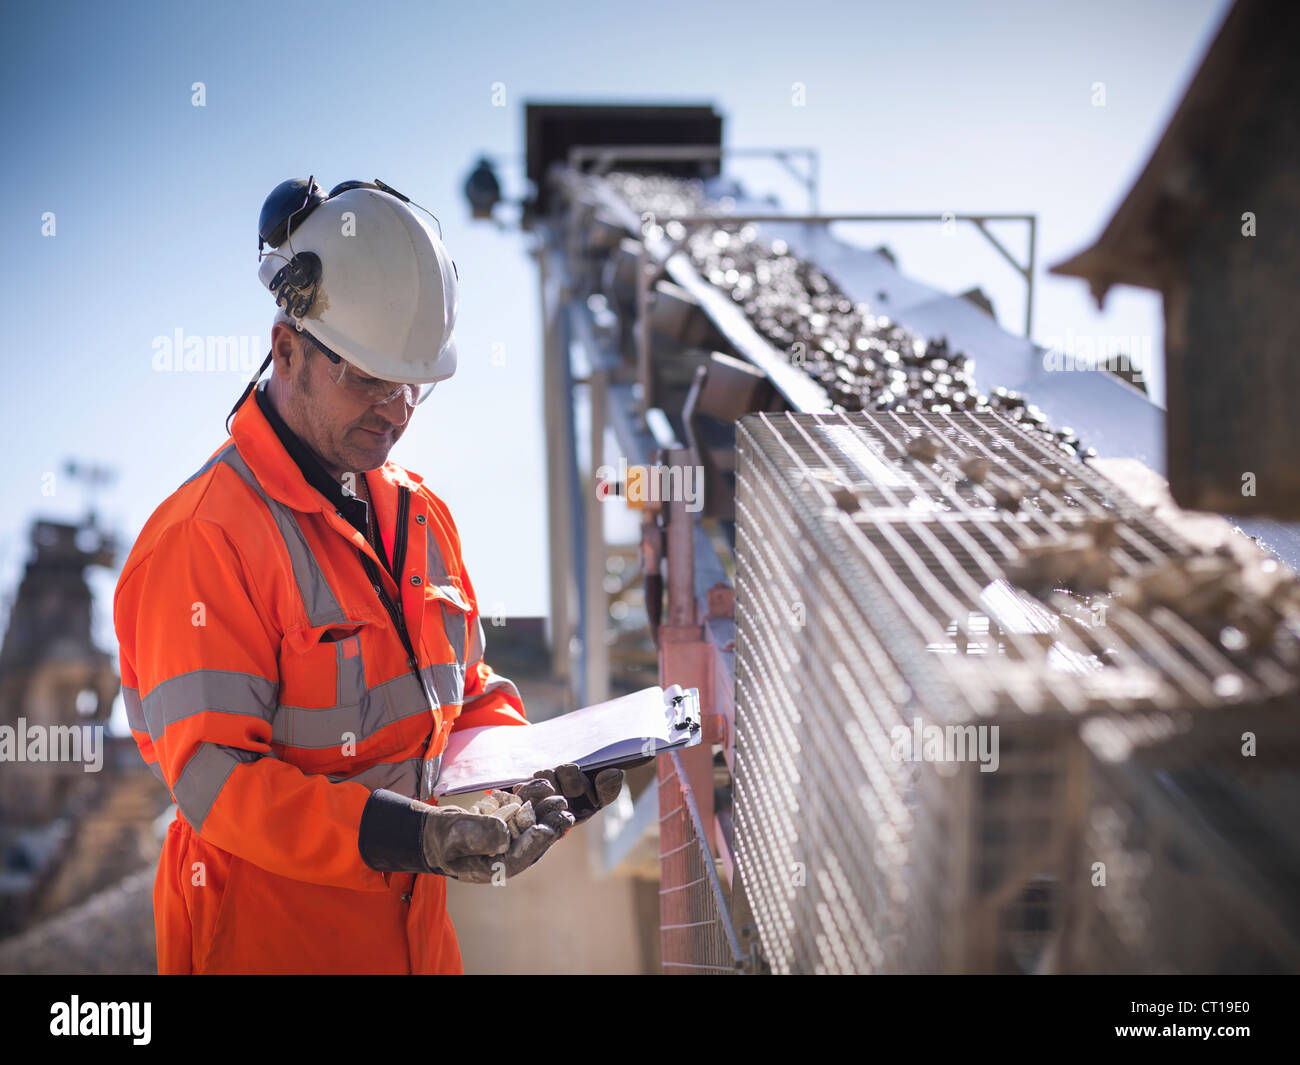 Worker with clipboard by conveyor belt - Stock Image